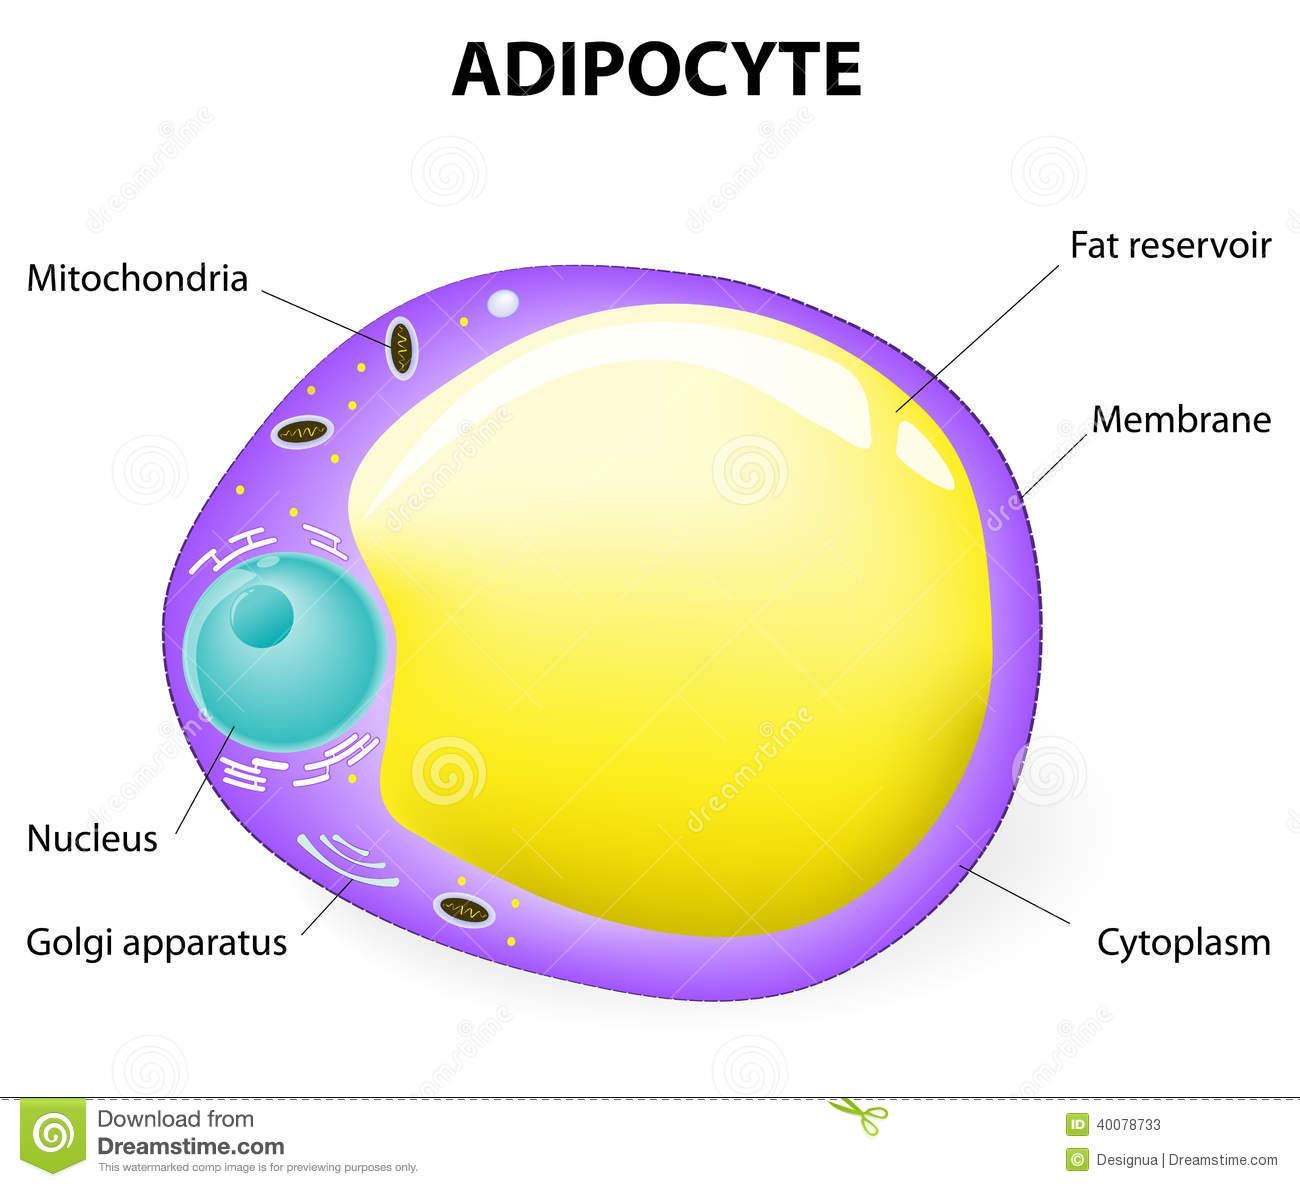 fat cell  adipocyte is responsible for accumulation energy, obesity, weight  gain and weight loss  vector diagram